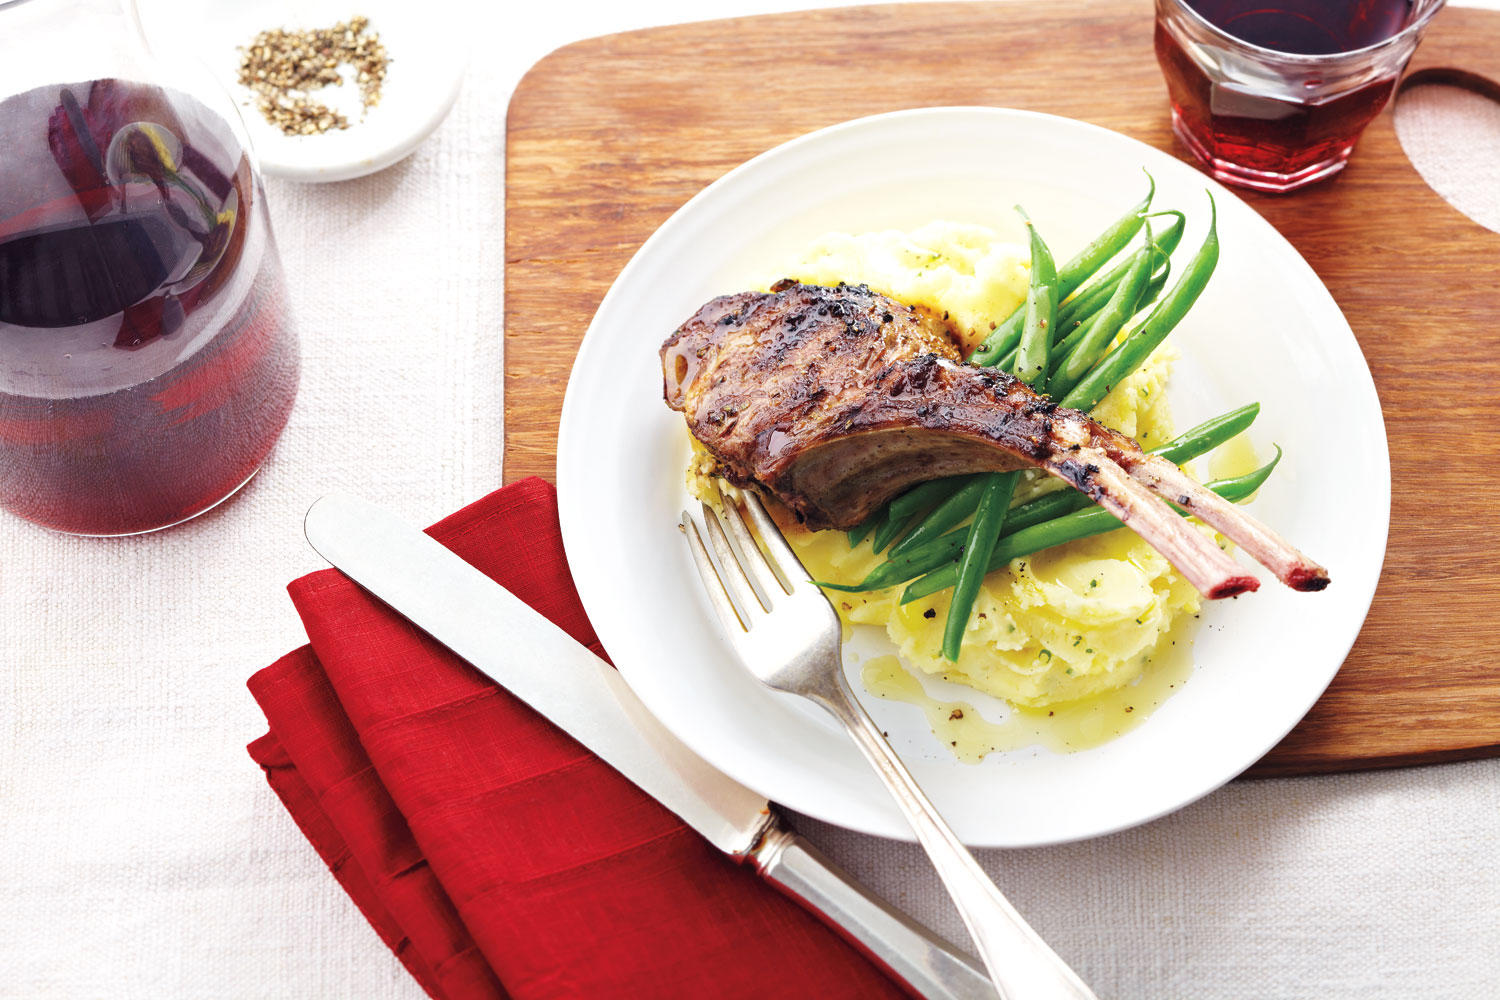 ROSEMARY-DIJON GRILLED LAMB CHOPS AND SMASHED POTATOES